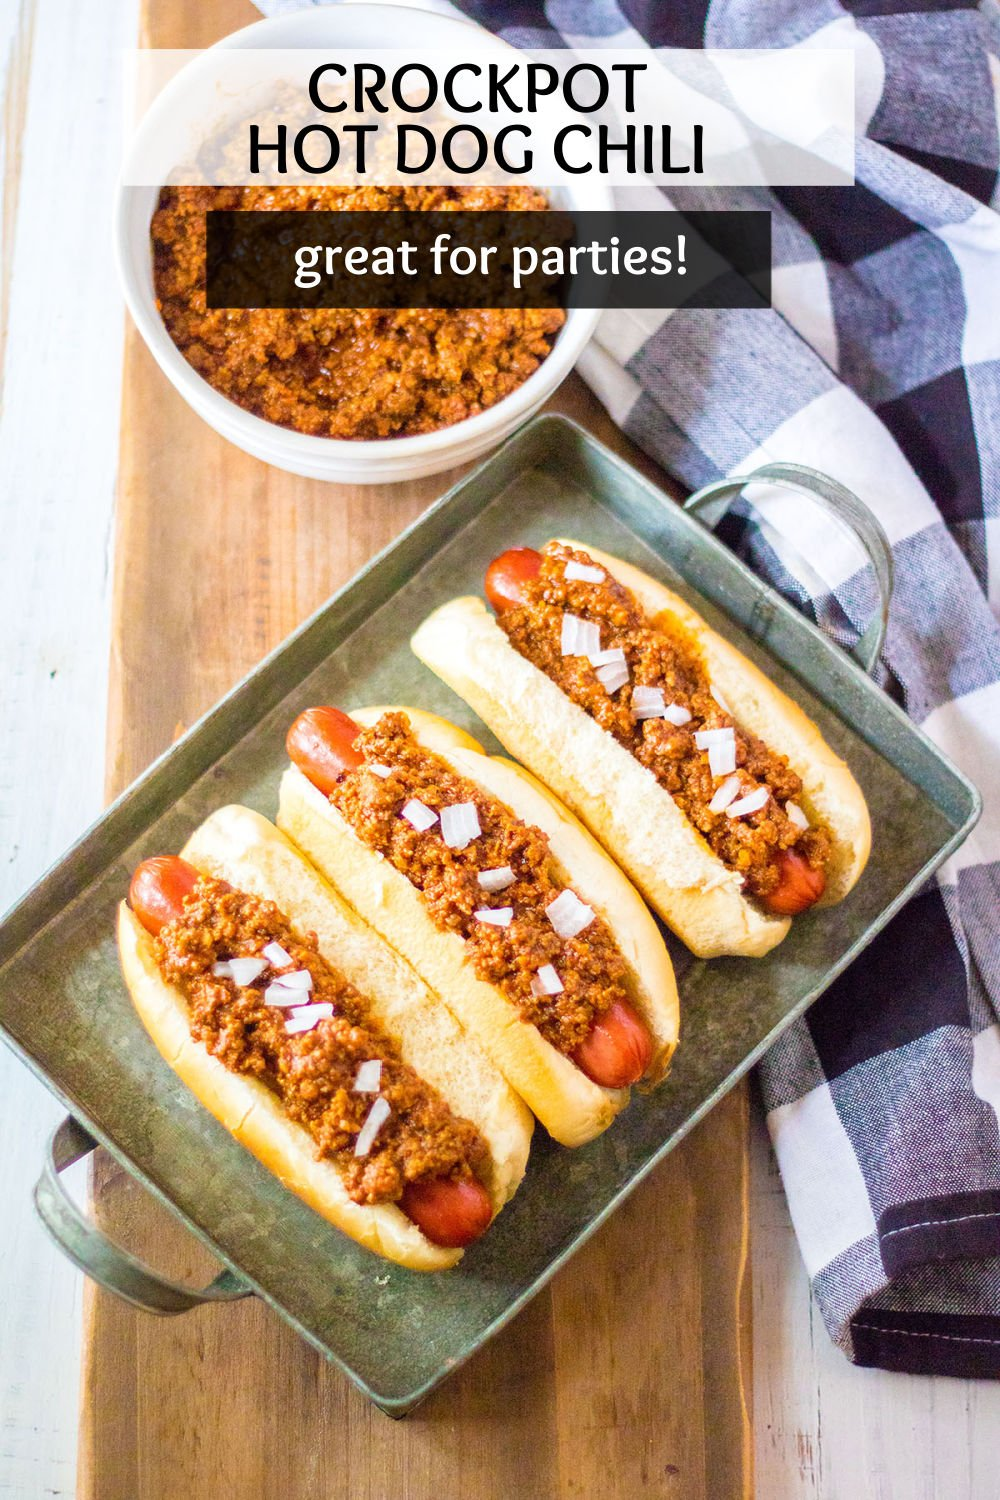 Full of flavor, this Crockpot Hot Dog Chili makes an ordinary hot dog extra delicious. Made in the slow cooker, it is the perfect addition to a hot dog bar with toppings, or serving on top of fries or burgers! | www.persnicketyplates.com